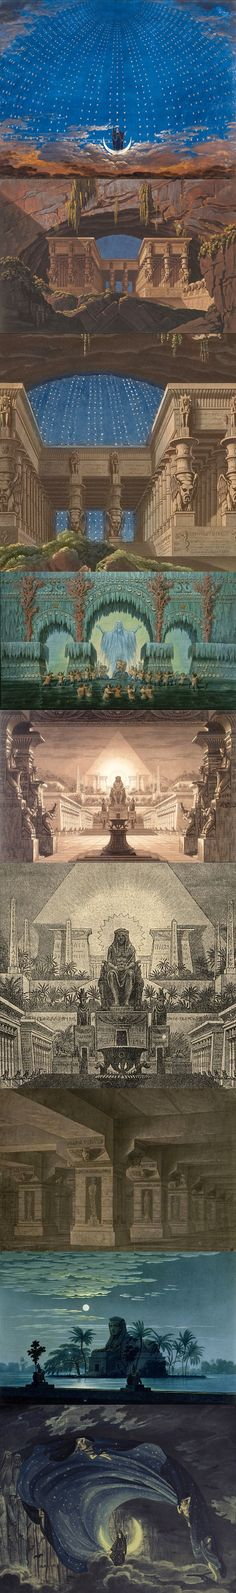 Karl Friedrich Schinkel, scenic designs for Die Zauberflöte (The Magic Flute); The Hall of Stars in the Palace of the Queen of the Night [Königin der Nacht]; Entwurfzeichnung zum Bühnenbild, Berlin, c. 1816.